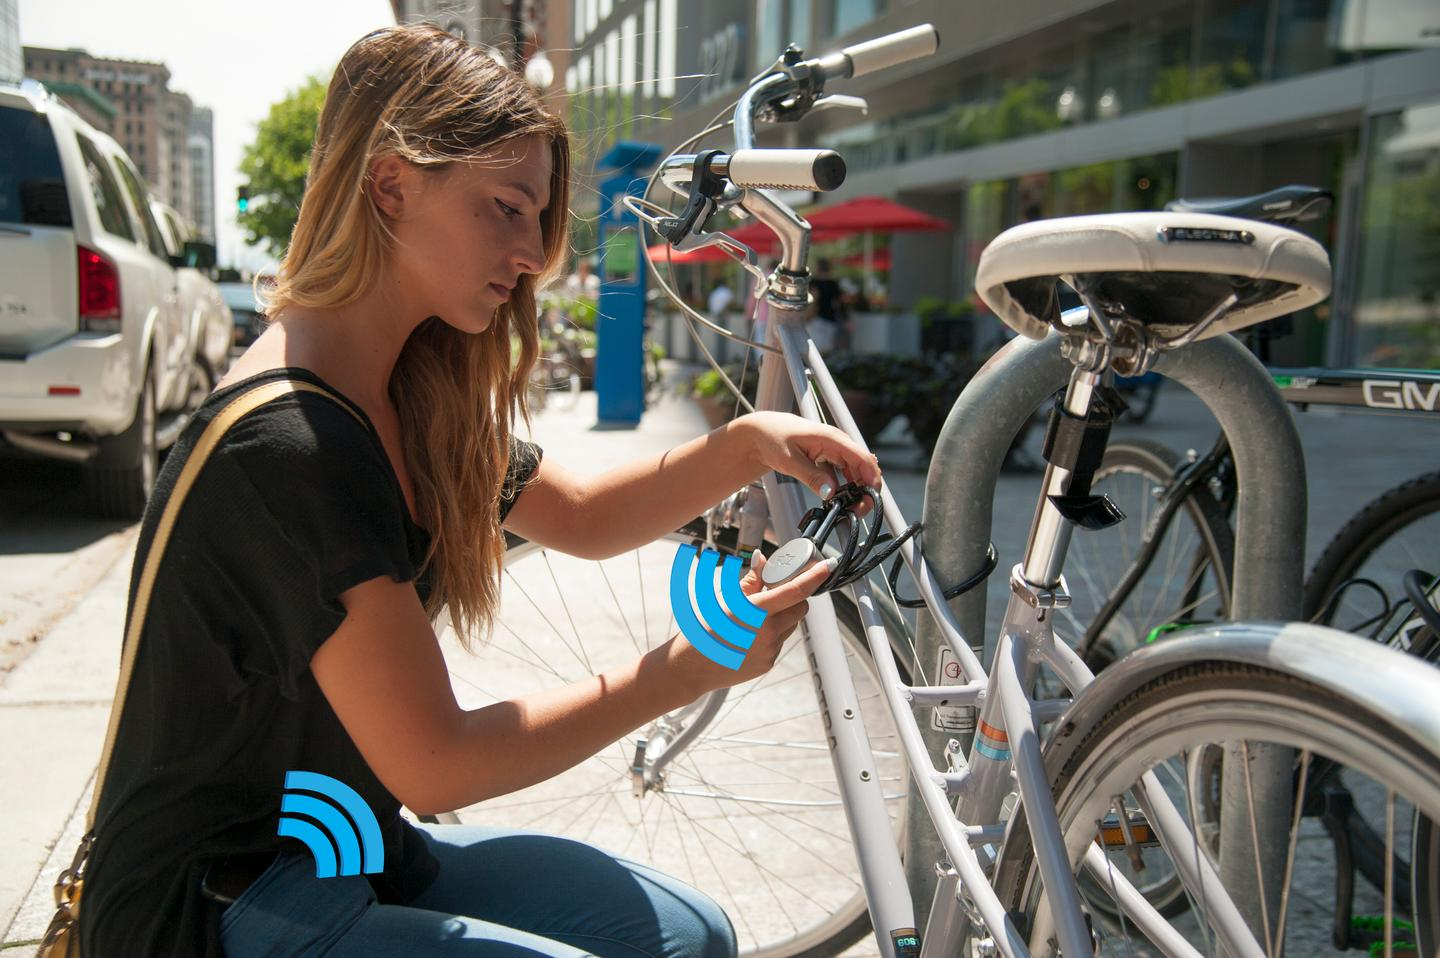 The Noke unlocks in response to a user-specific Bluetooth signal